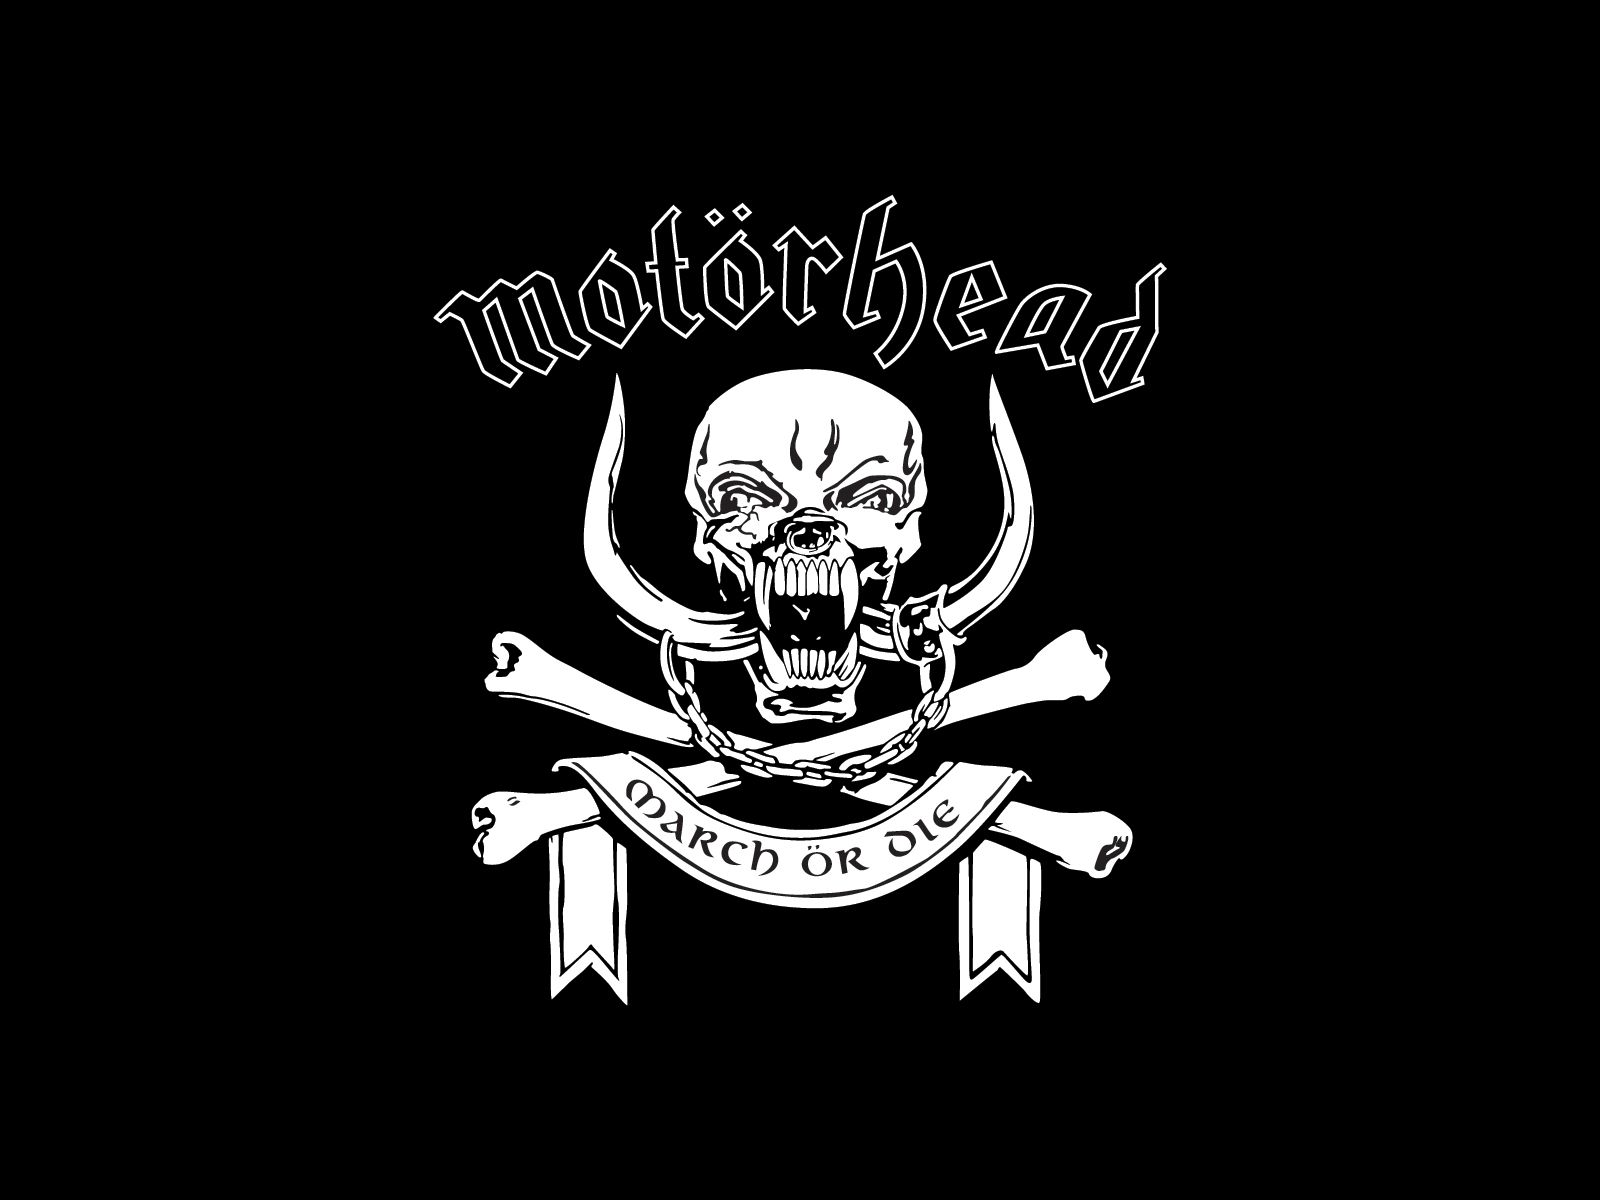 Motorhead bastards music hd wallpaper 21996 hq desktop - View Download Comment And Rate This 1600x1200 Mot Rhead Wallpaper Wallpaper Abyss